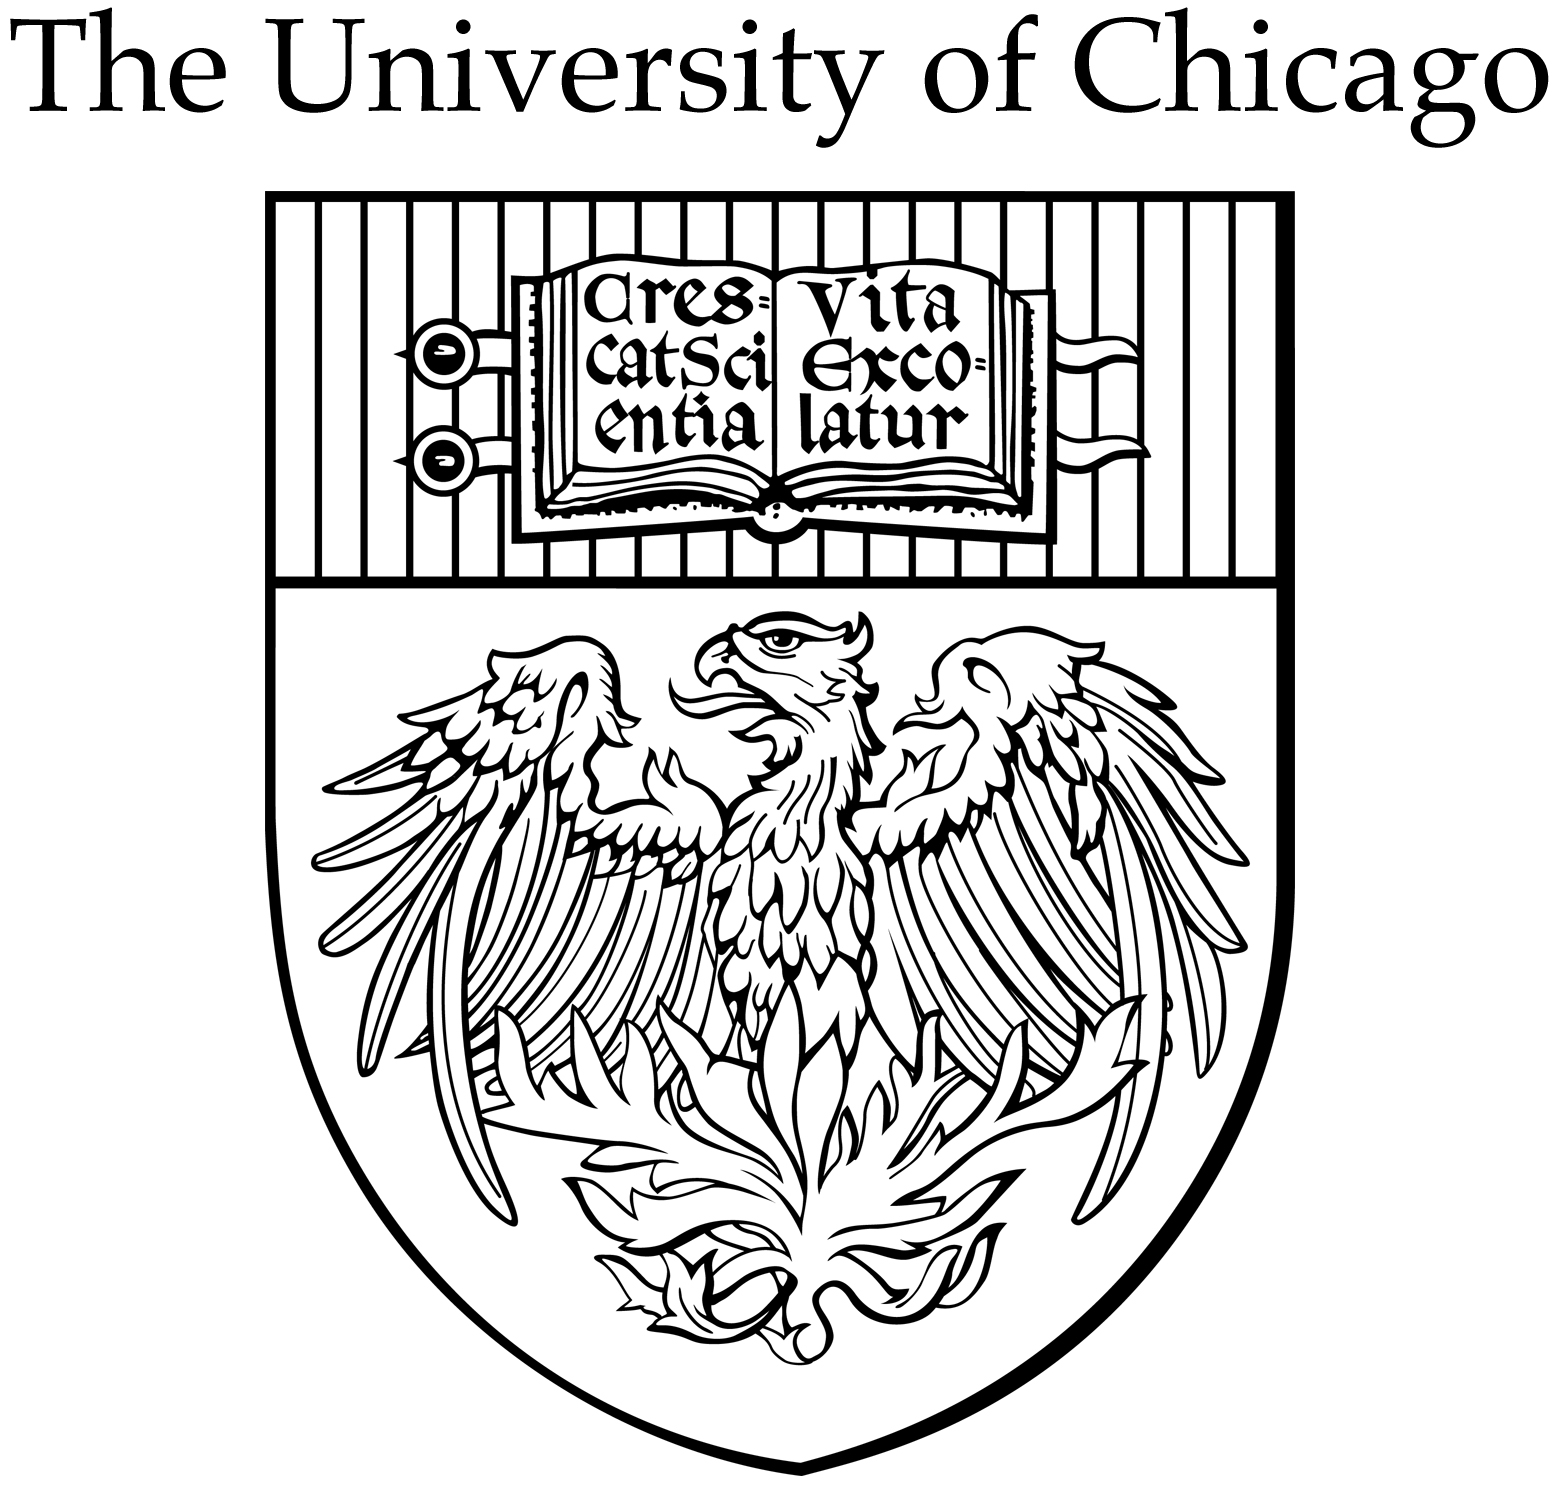 university of chicago admissions essays ivy coach uchicago essays university of chicago admission essays admission essays for uchicago